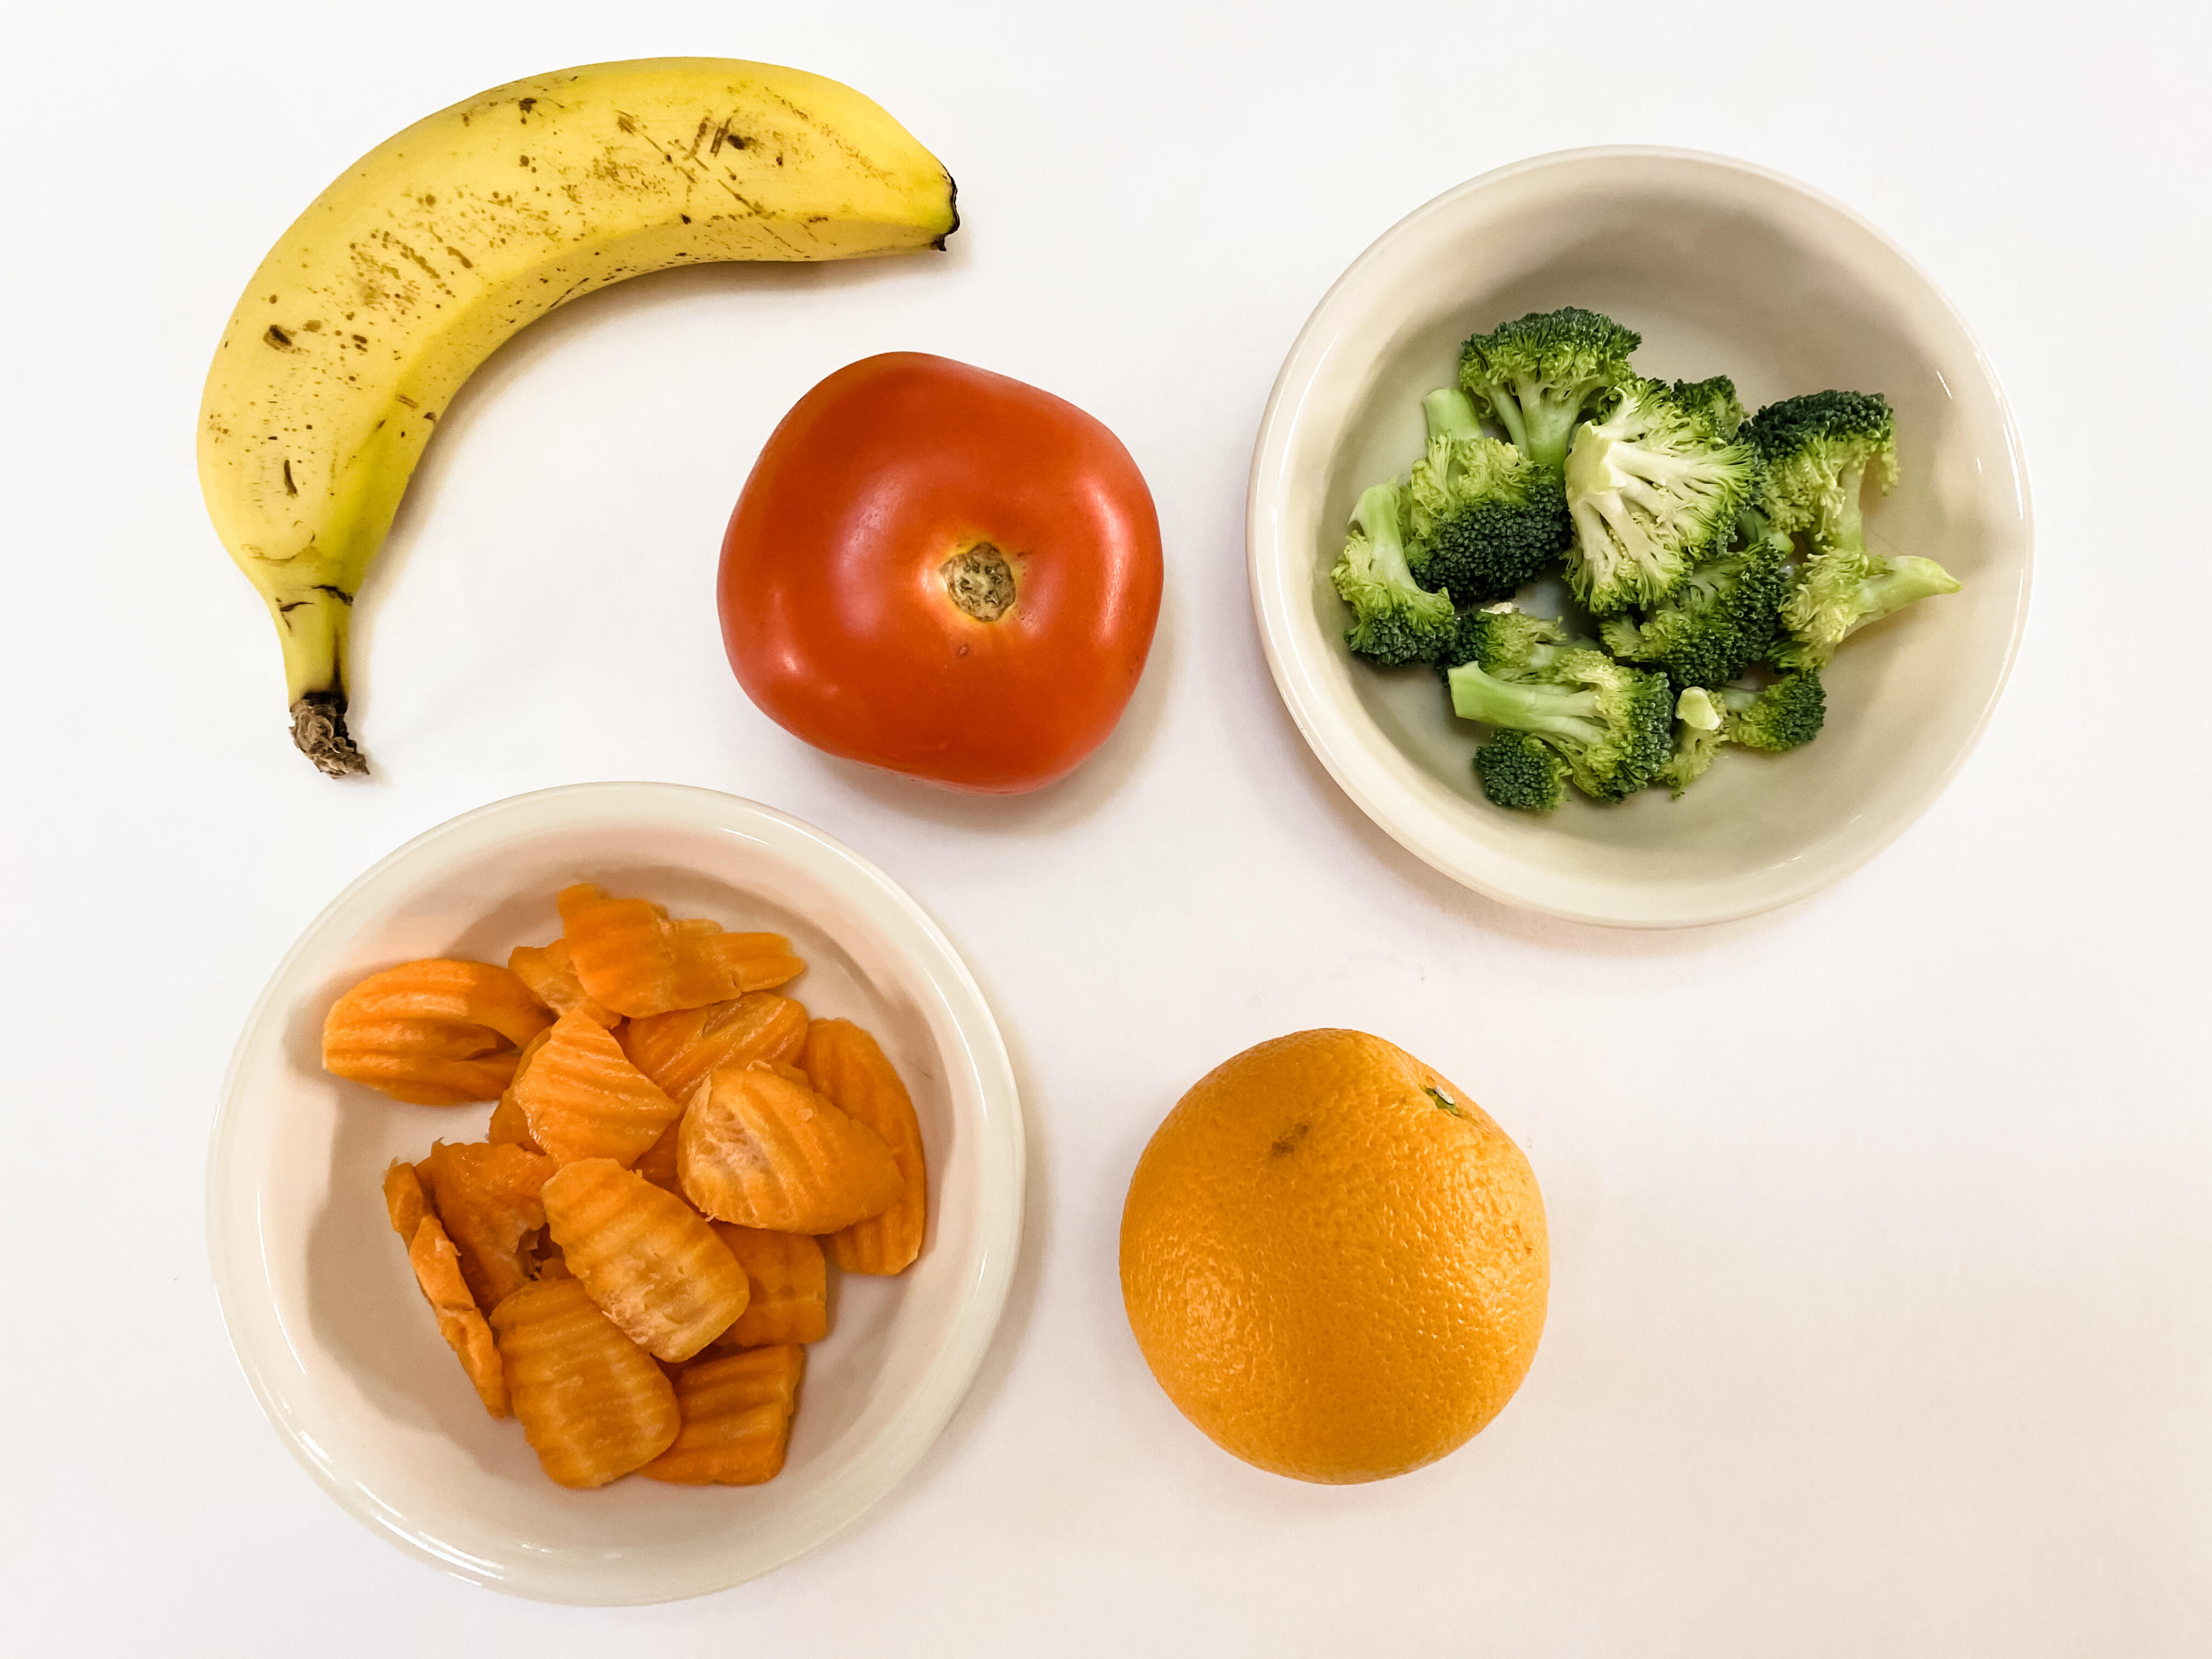 Five servings of produce: a medium banana, a tomato, an orange, half a cup of broccoli, and half a cup of carrots.